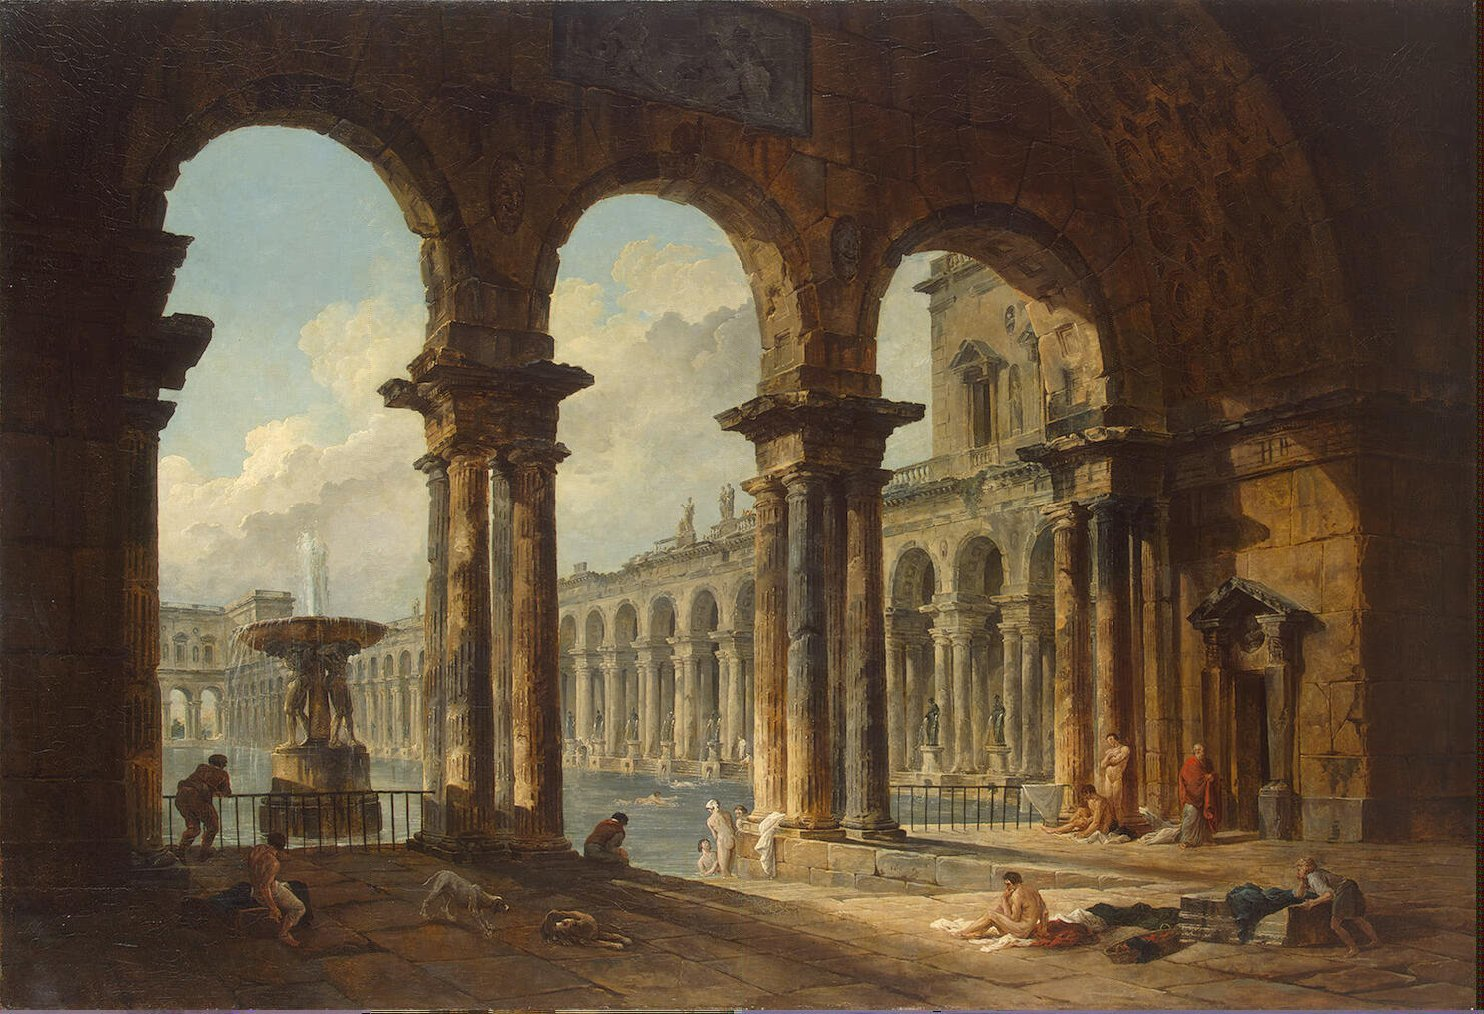 paintings palace Hubert Robert HD Wallpaper